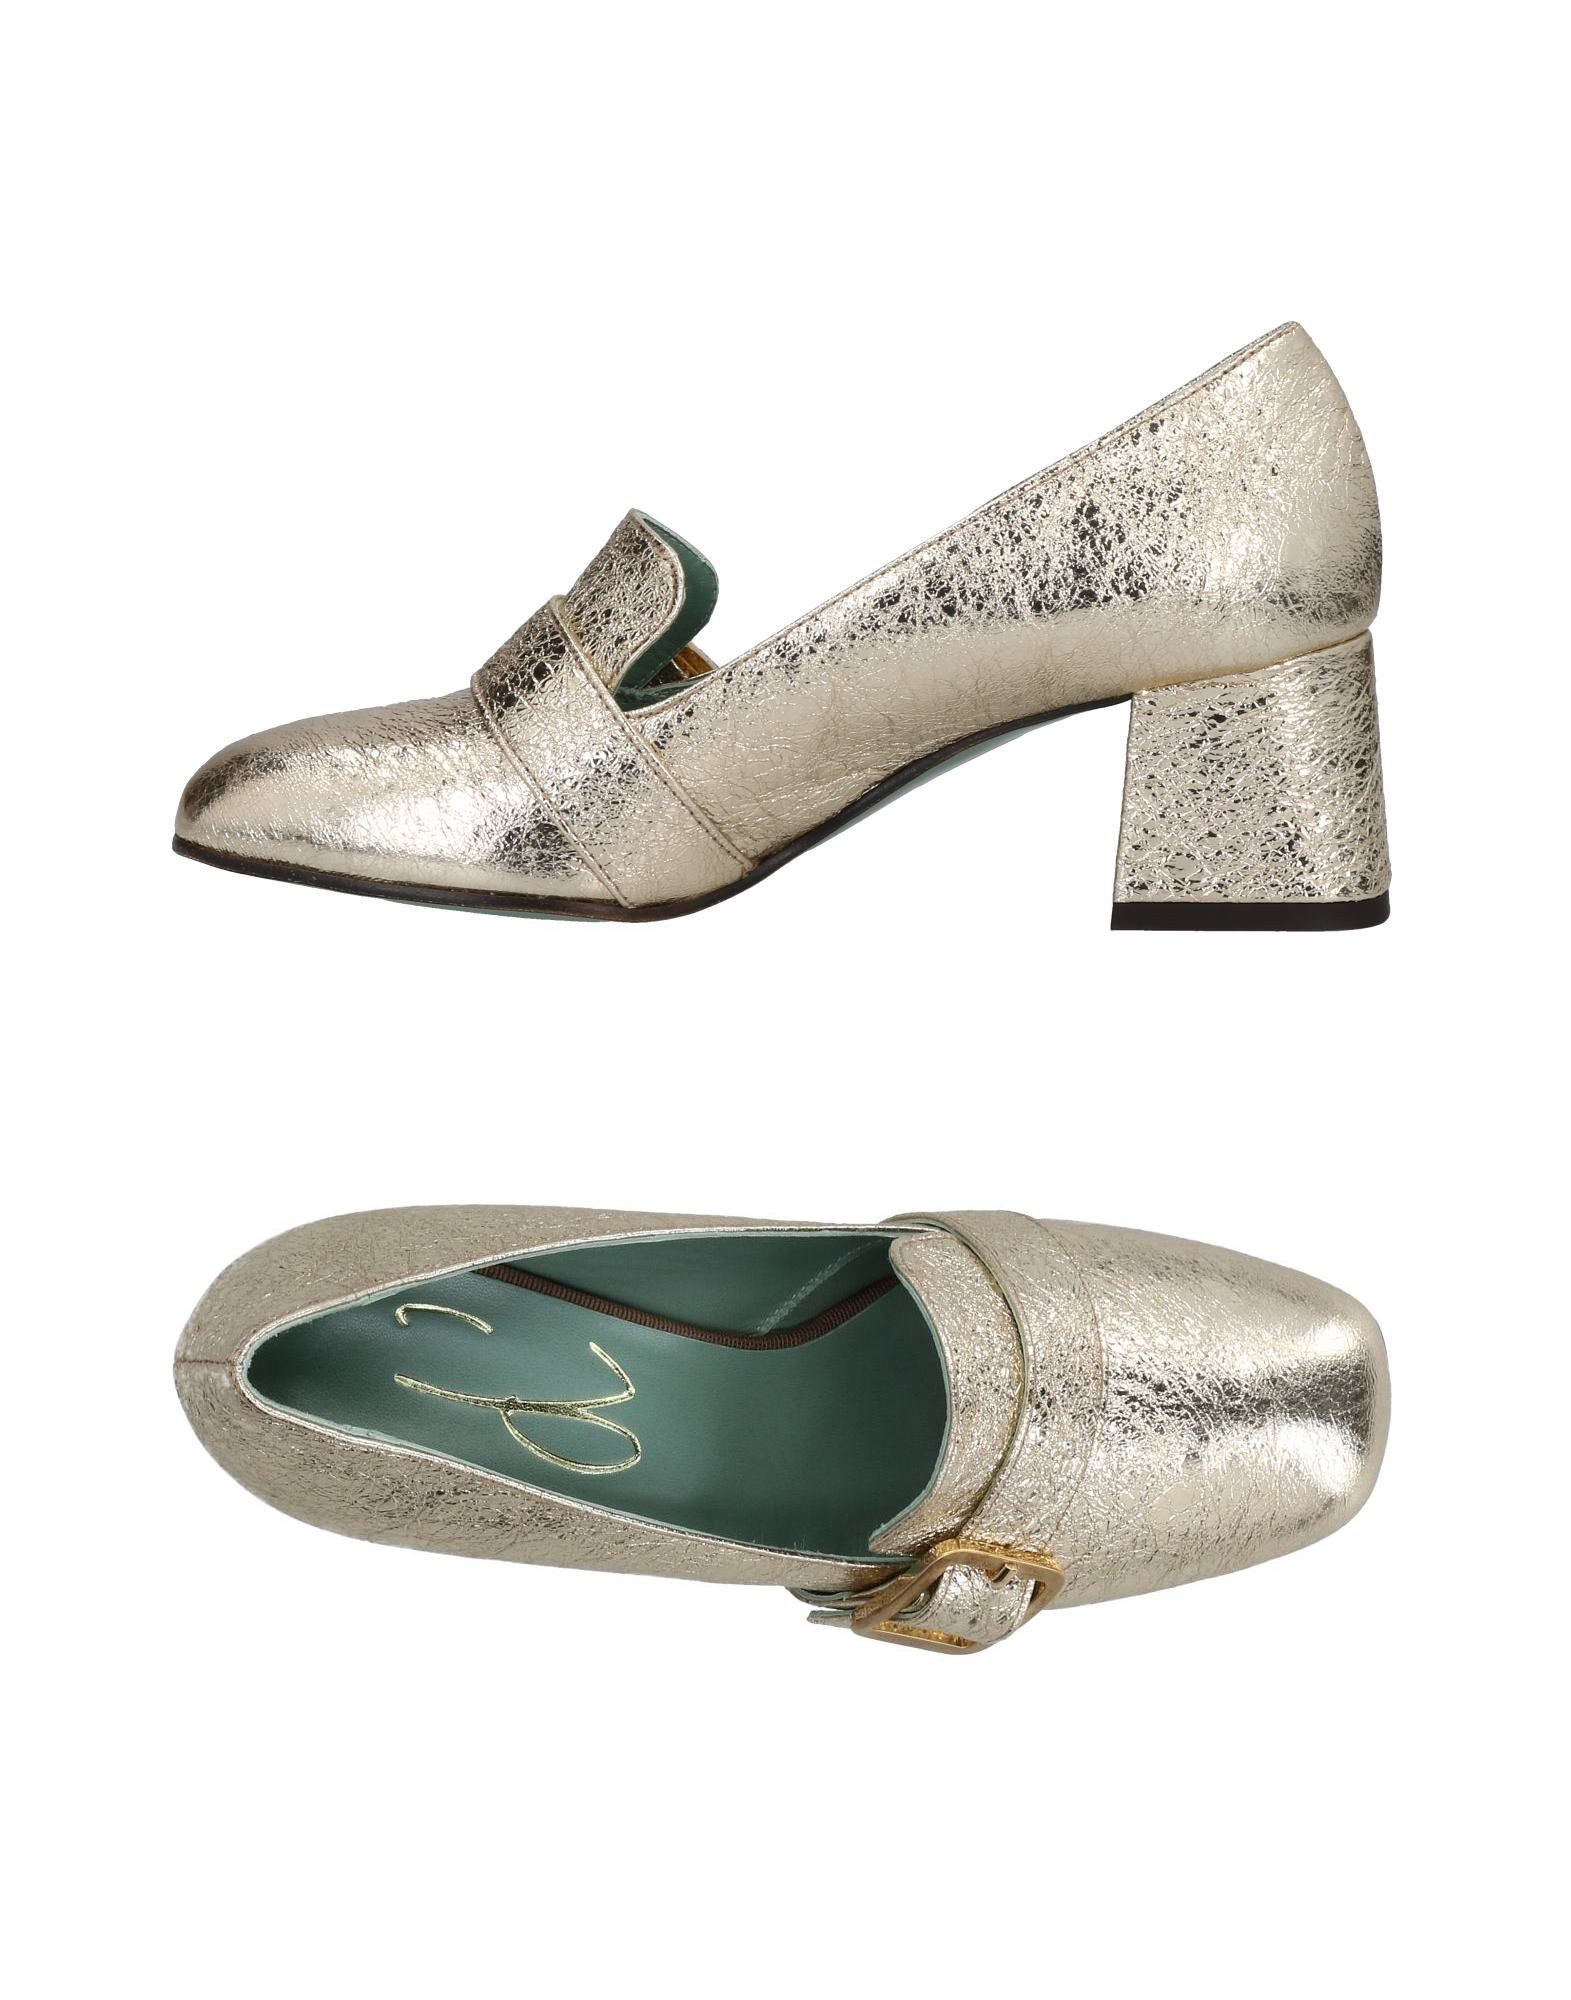 Paola Paola D'arcano Loafers - Women Paola Paola D'arcano Loafers online on  United Kingdom - 11480730QB f44932